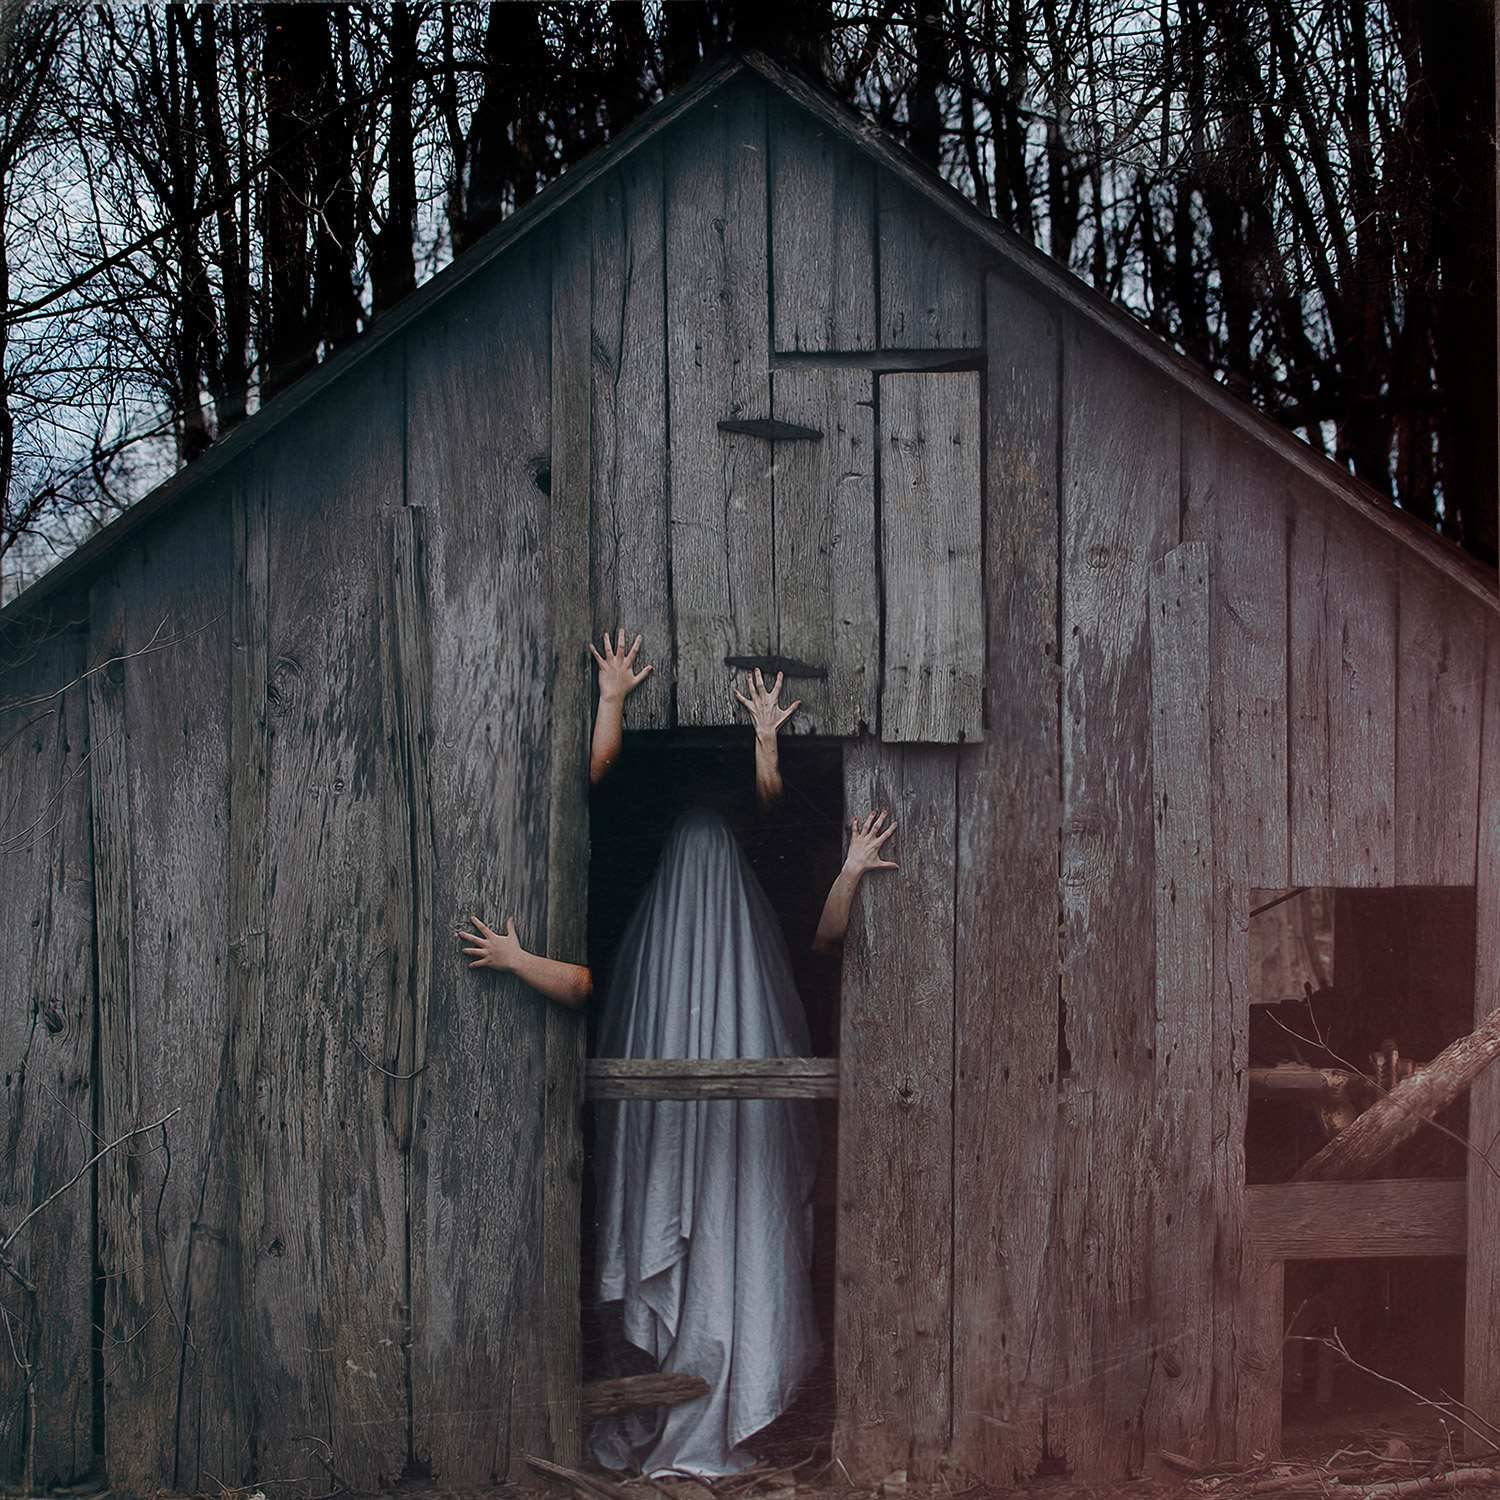 Eerie Ghosts in Christopher McKenney's Horror Photography ...